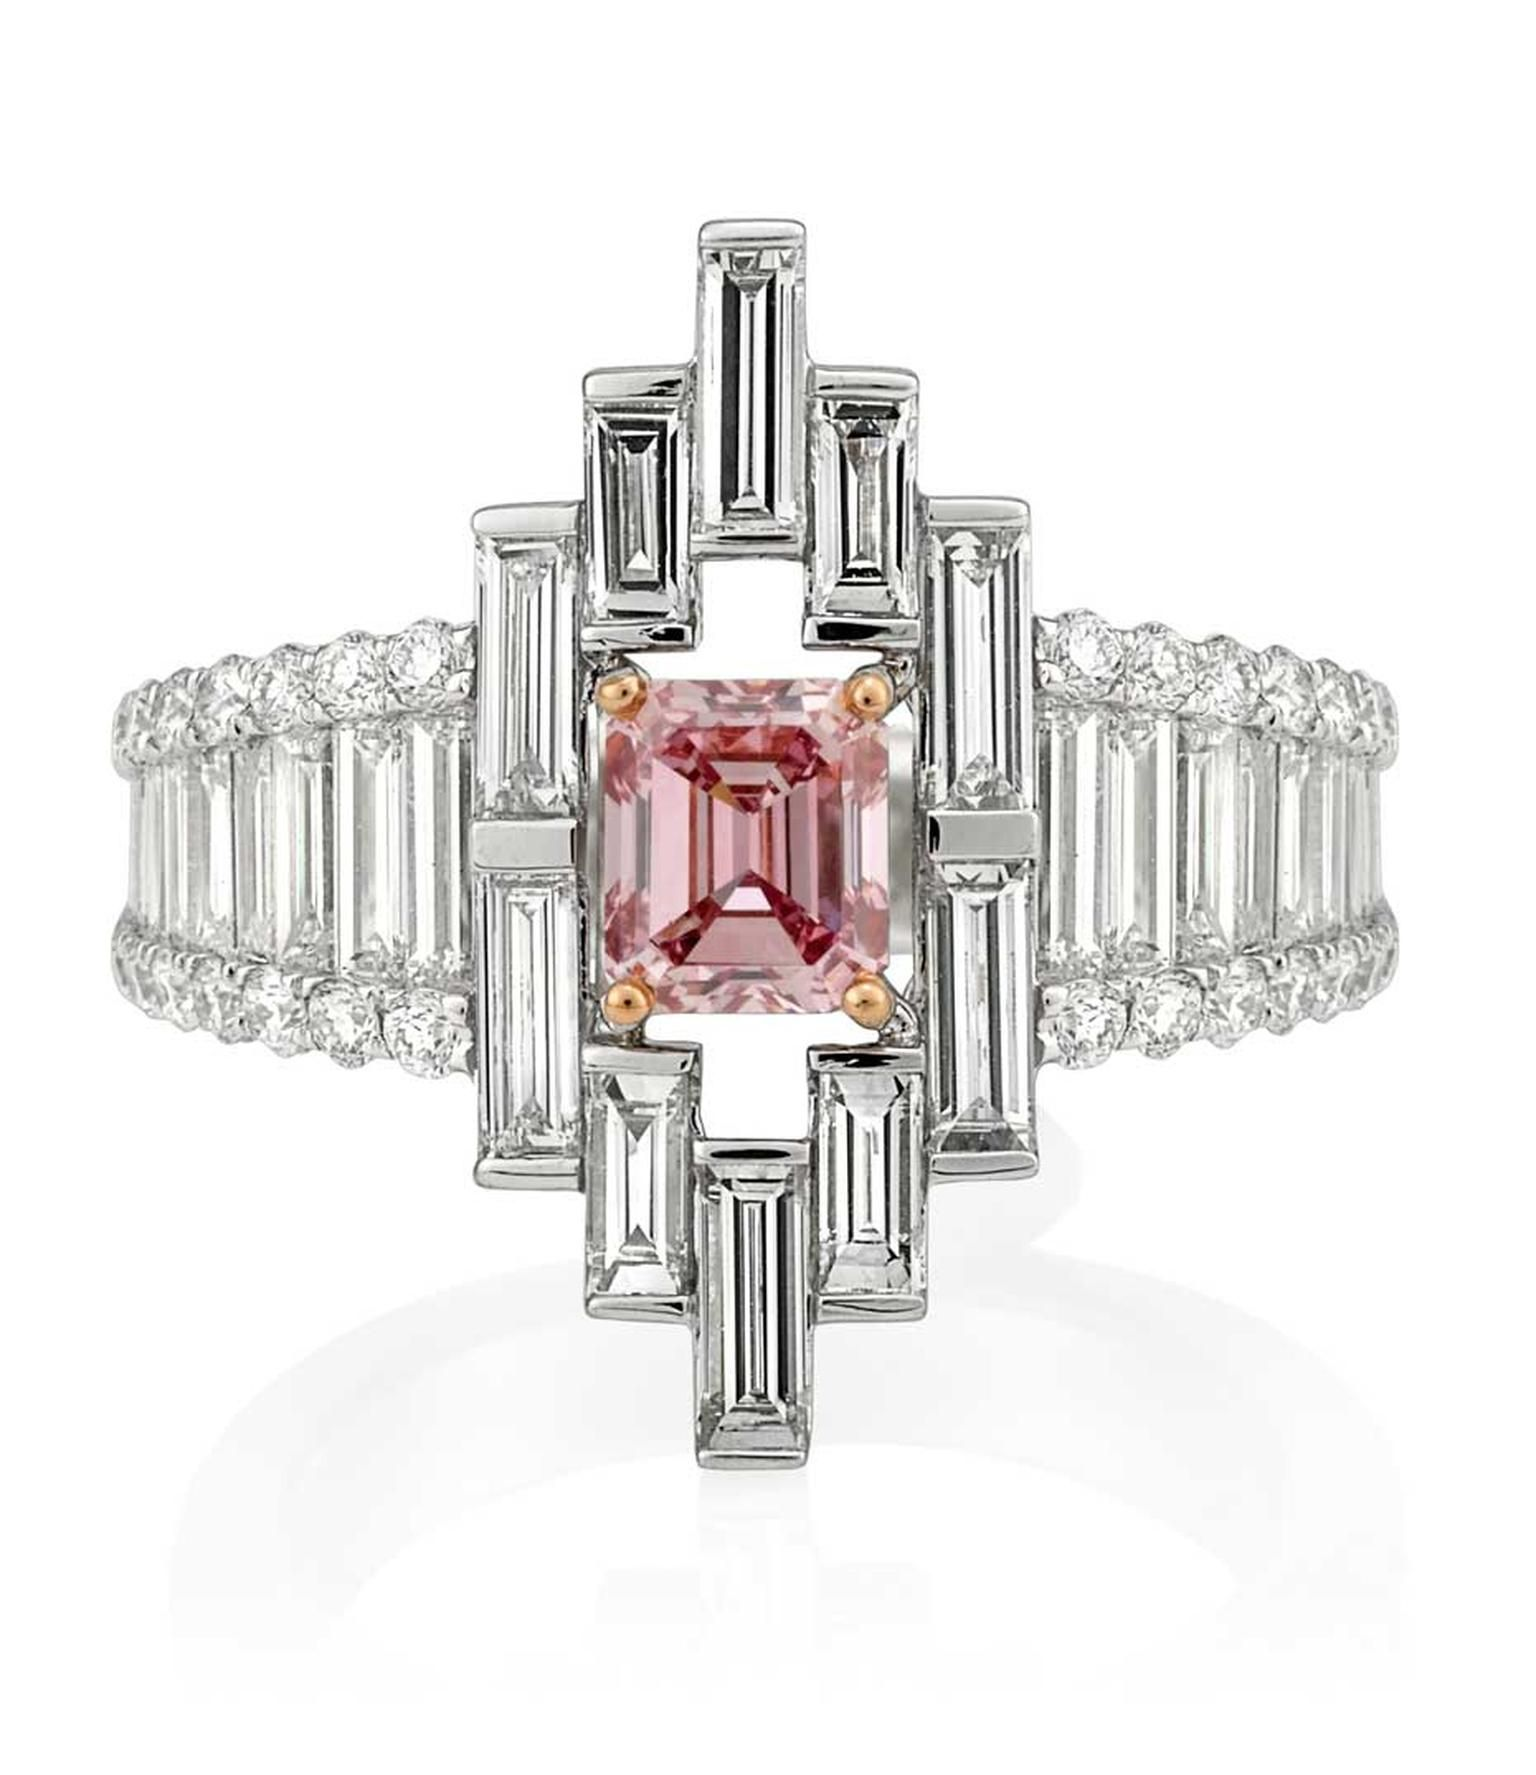 Argyle Pink Diamonds The Radiant Romantic And Rare Gems From